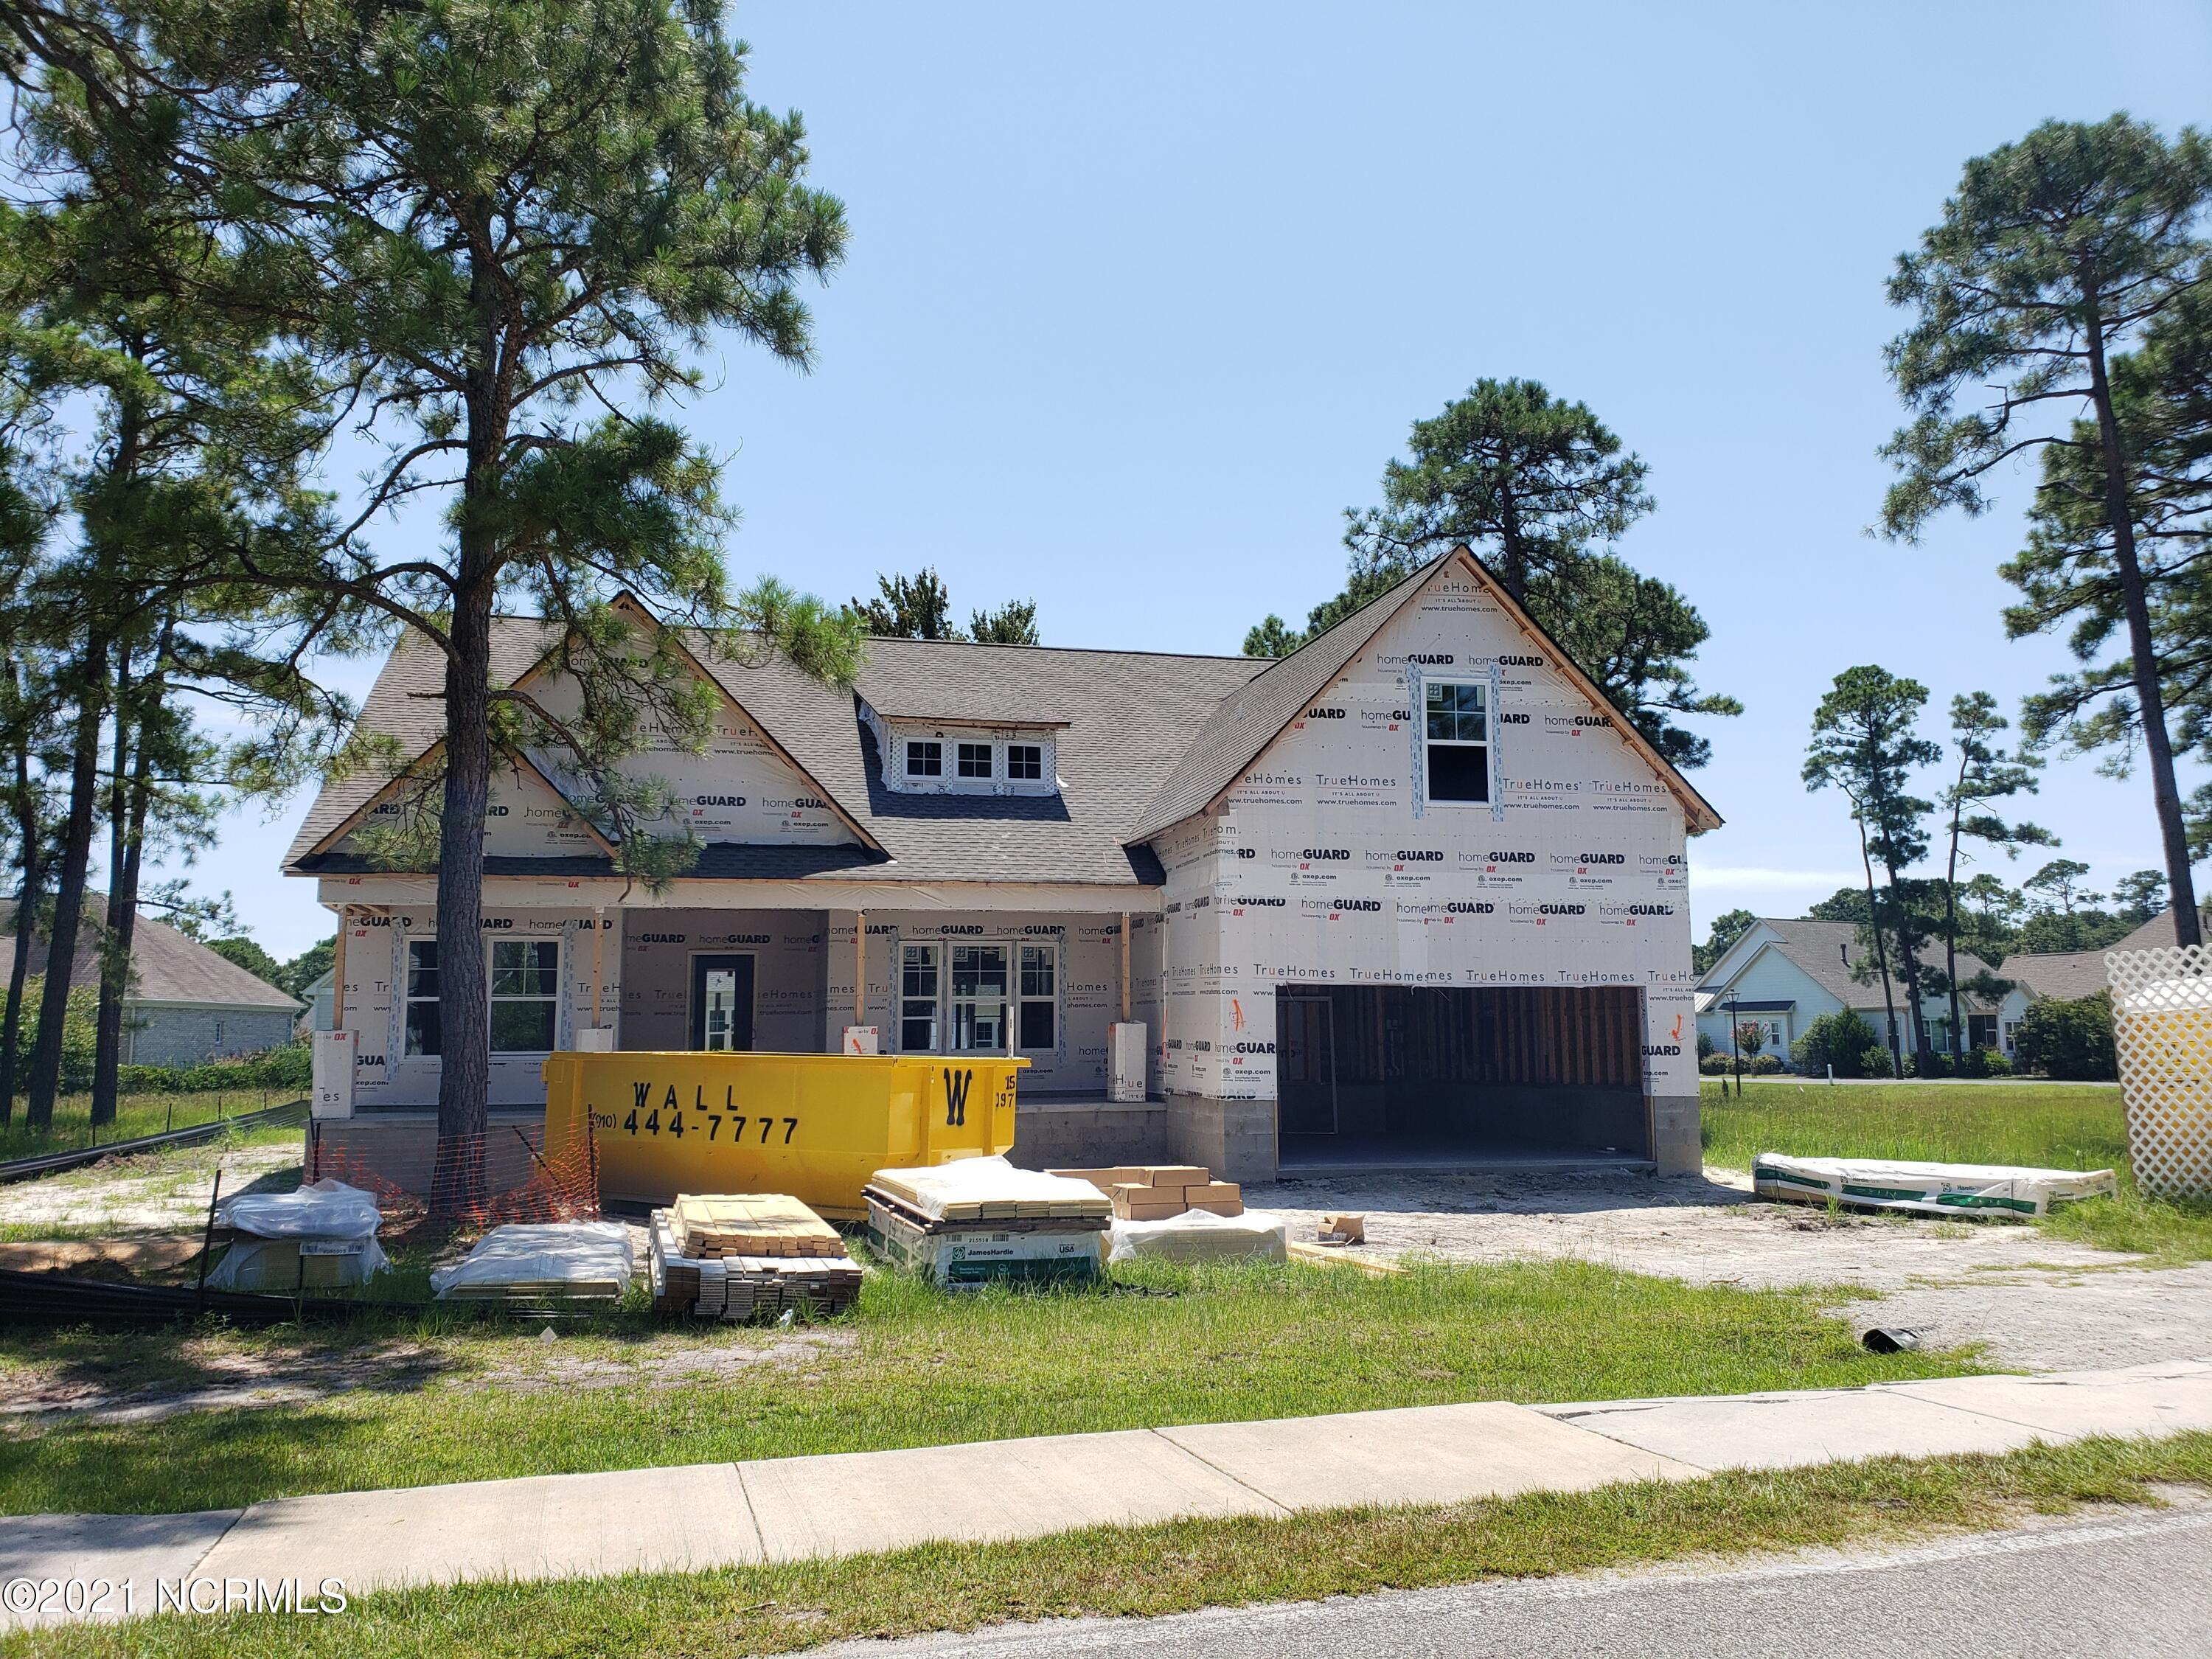 2377 St James Drive, Southport, North Carolina 28461, 3 Bedrooms Bedrooms, 9 Rooms Rooms,3 BathroomsBathrooms,Single family residence,For sale,St James,100285809